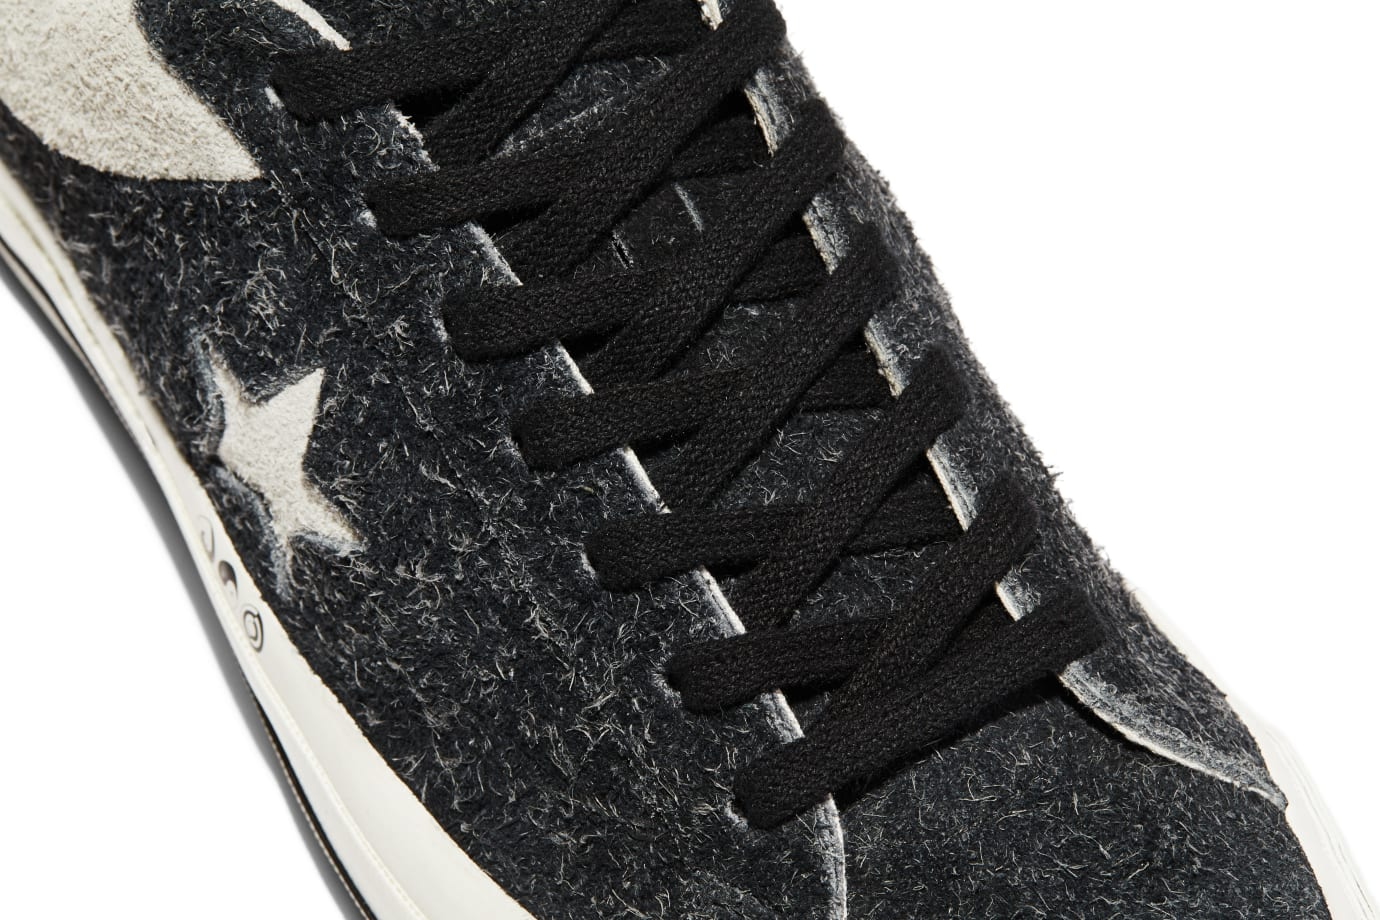 Clot x Converse One Star '74 (Laces)